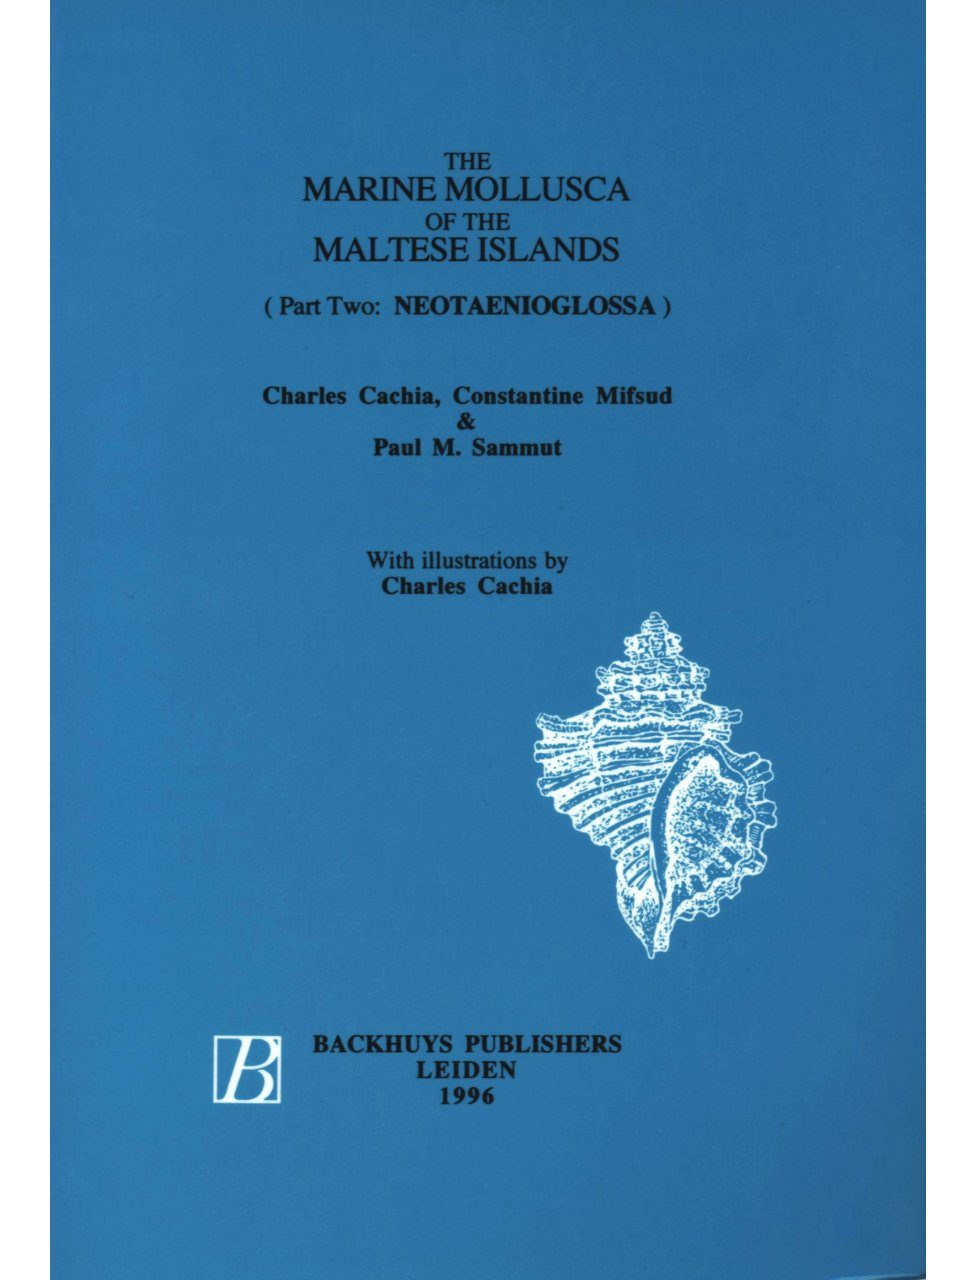 The Marine Mollusca of the Maltese Islands, Part 2: Neotaenioglossa